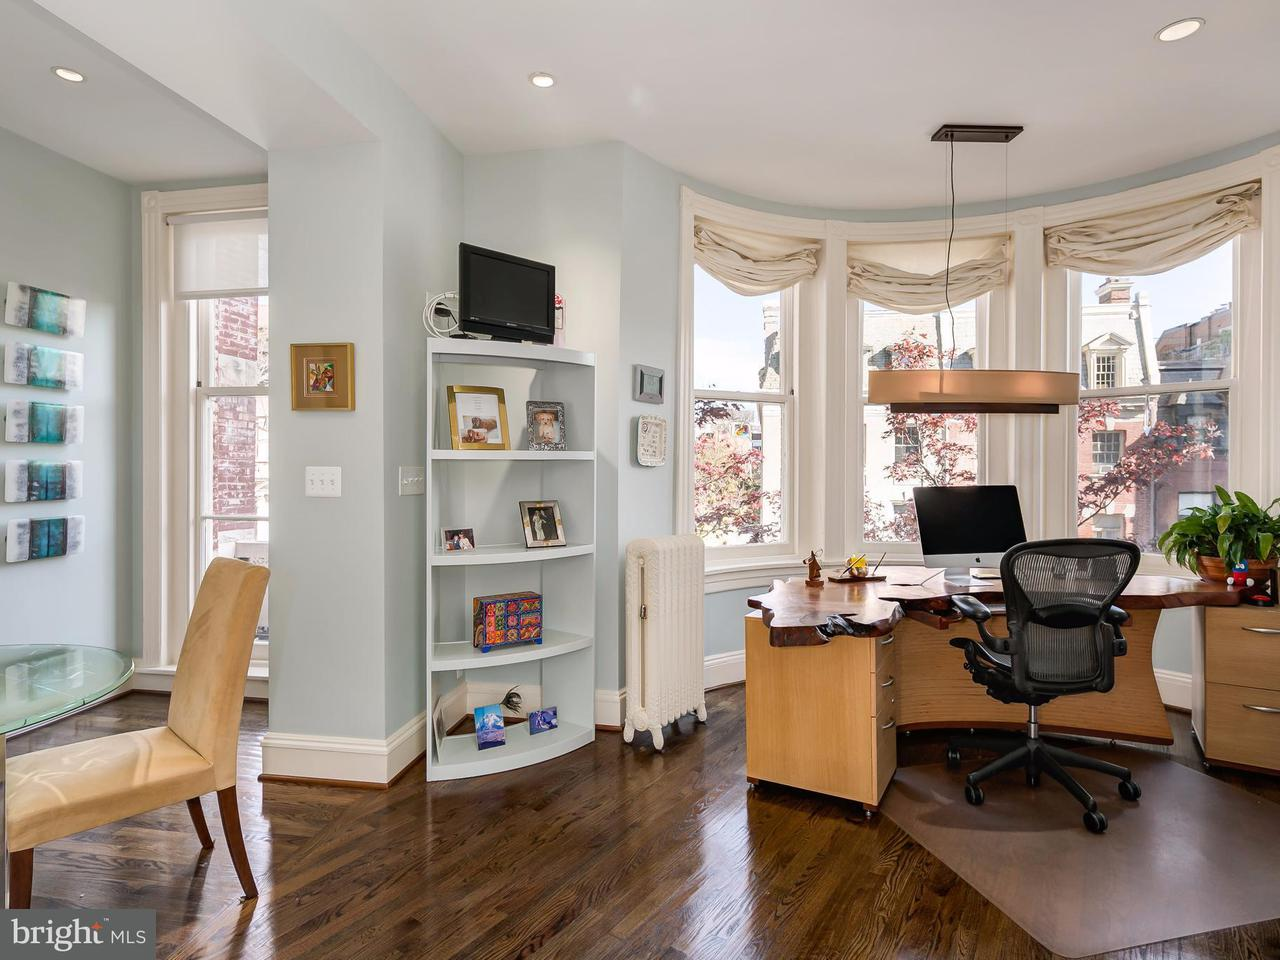 Additional photo for property listing at 1616 22nd St Nw 1616 22nd St Nw Washington, Distretto Di Columbia 20008 Stati Uniti